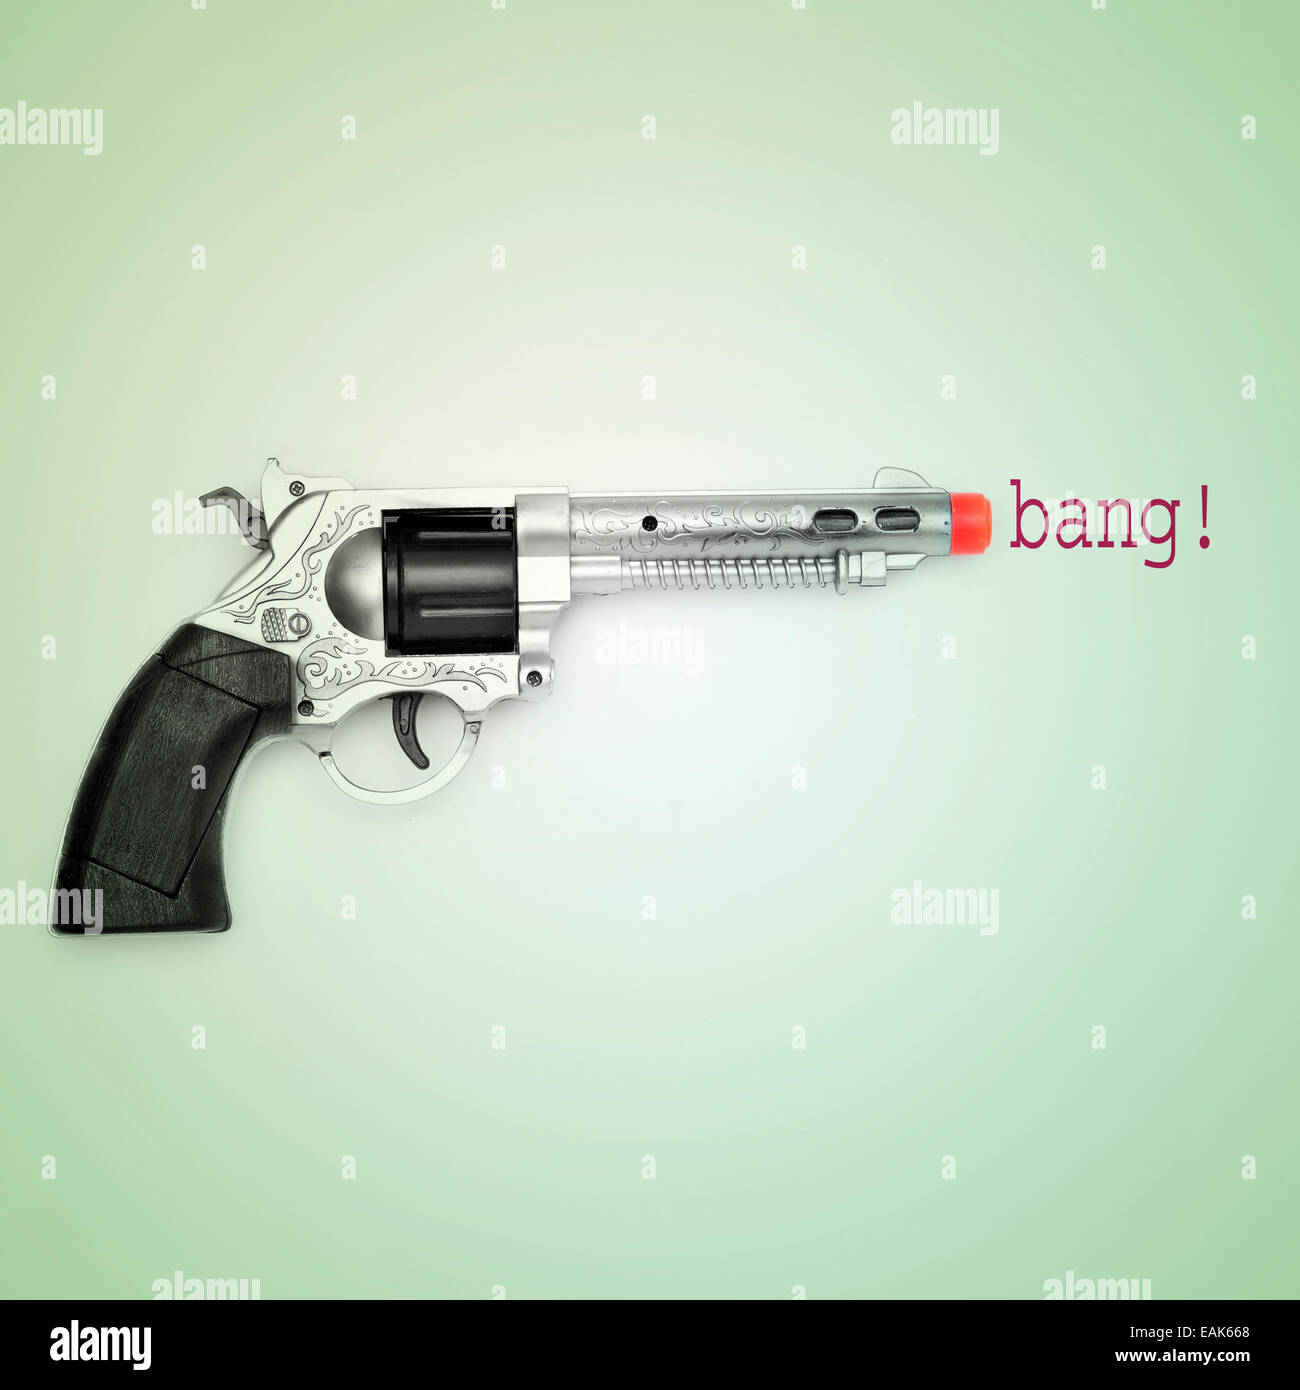 picture of a toy gun and the word bang on a blue background, with a retro effect - Stock Image